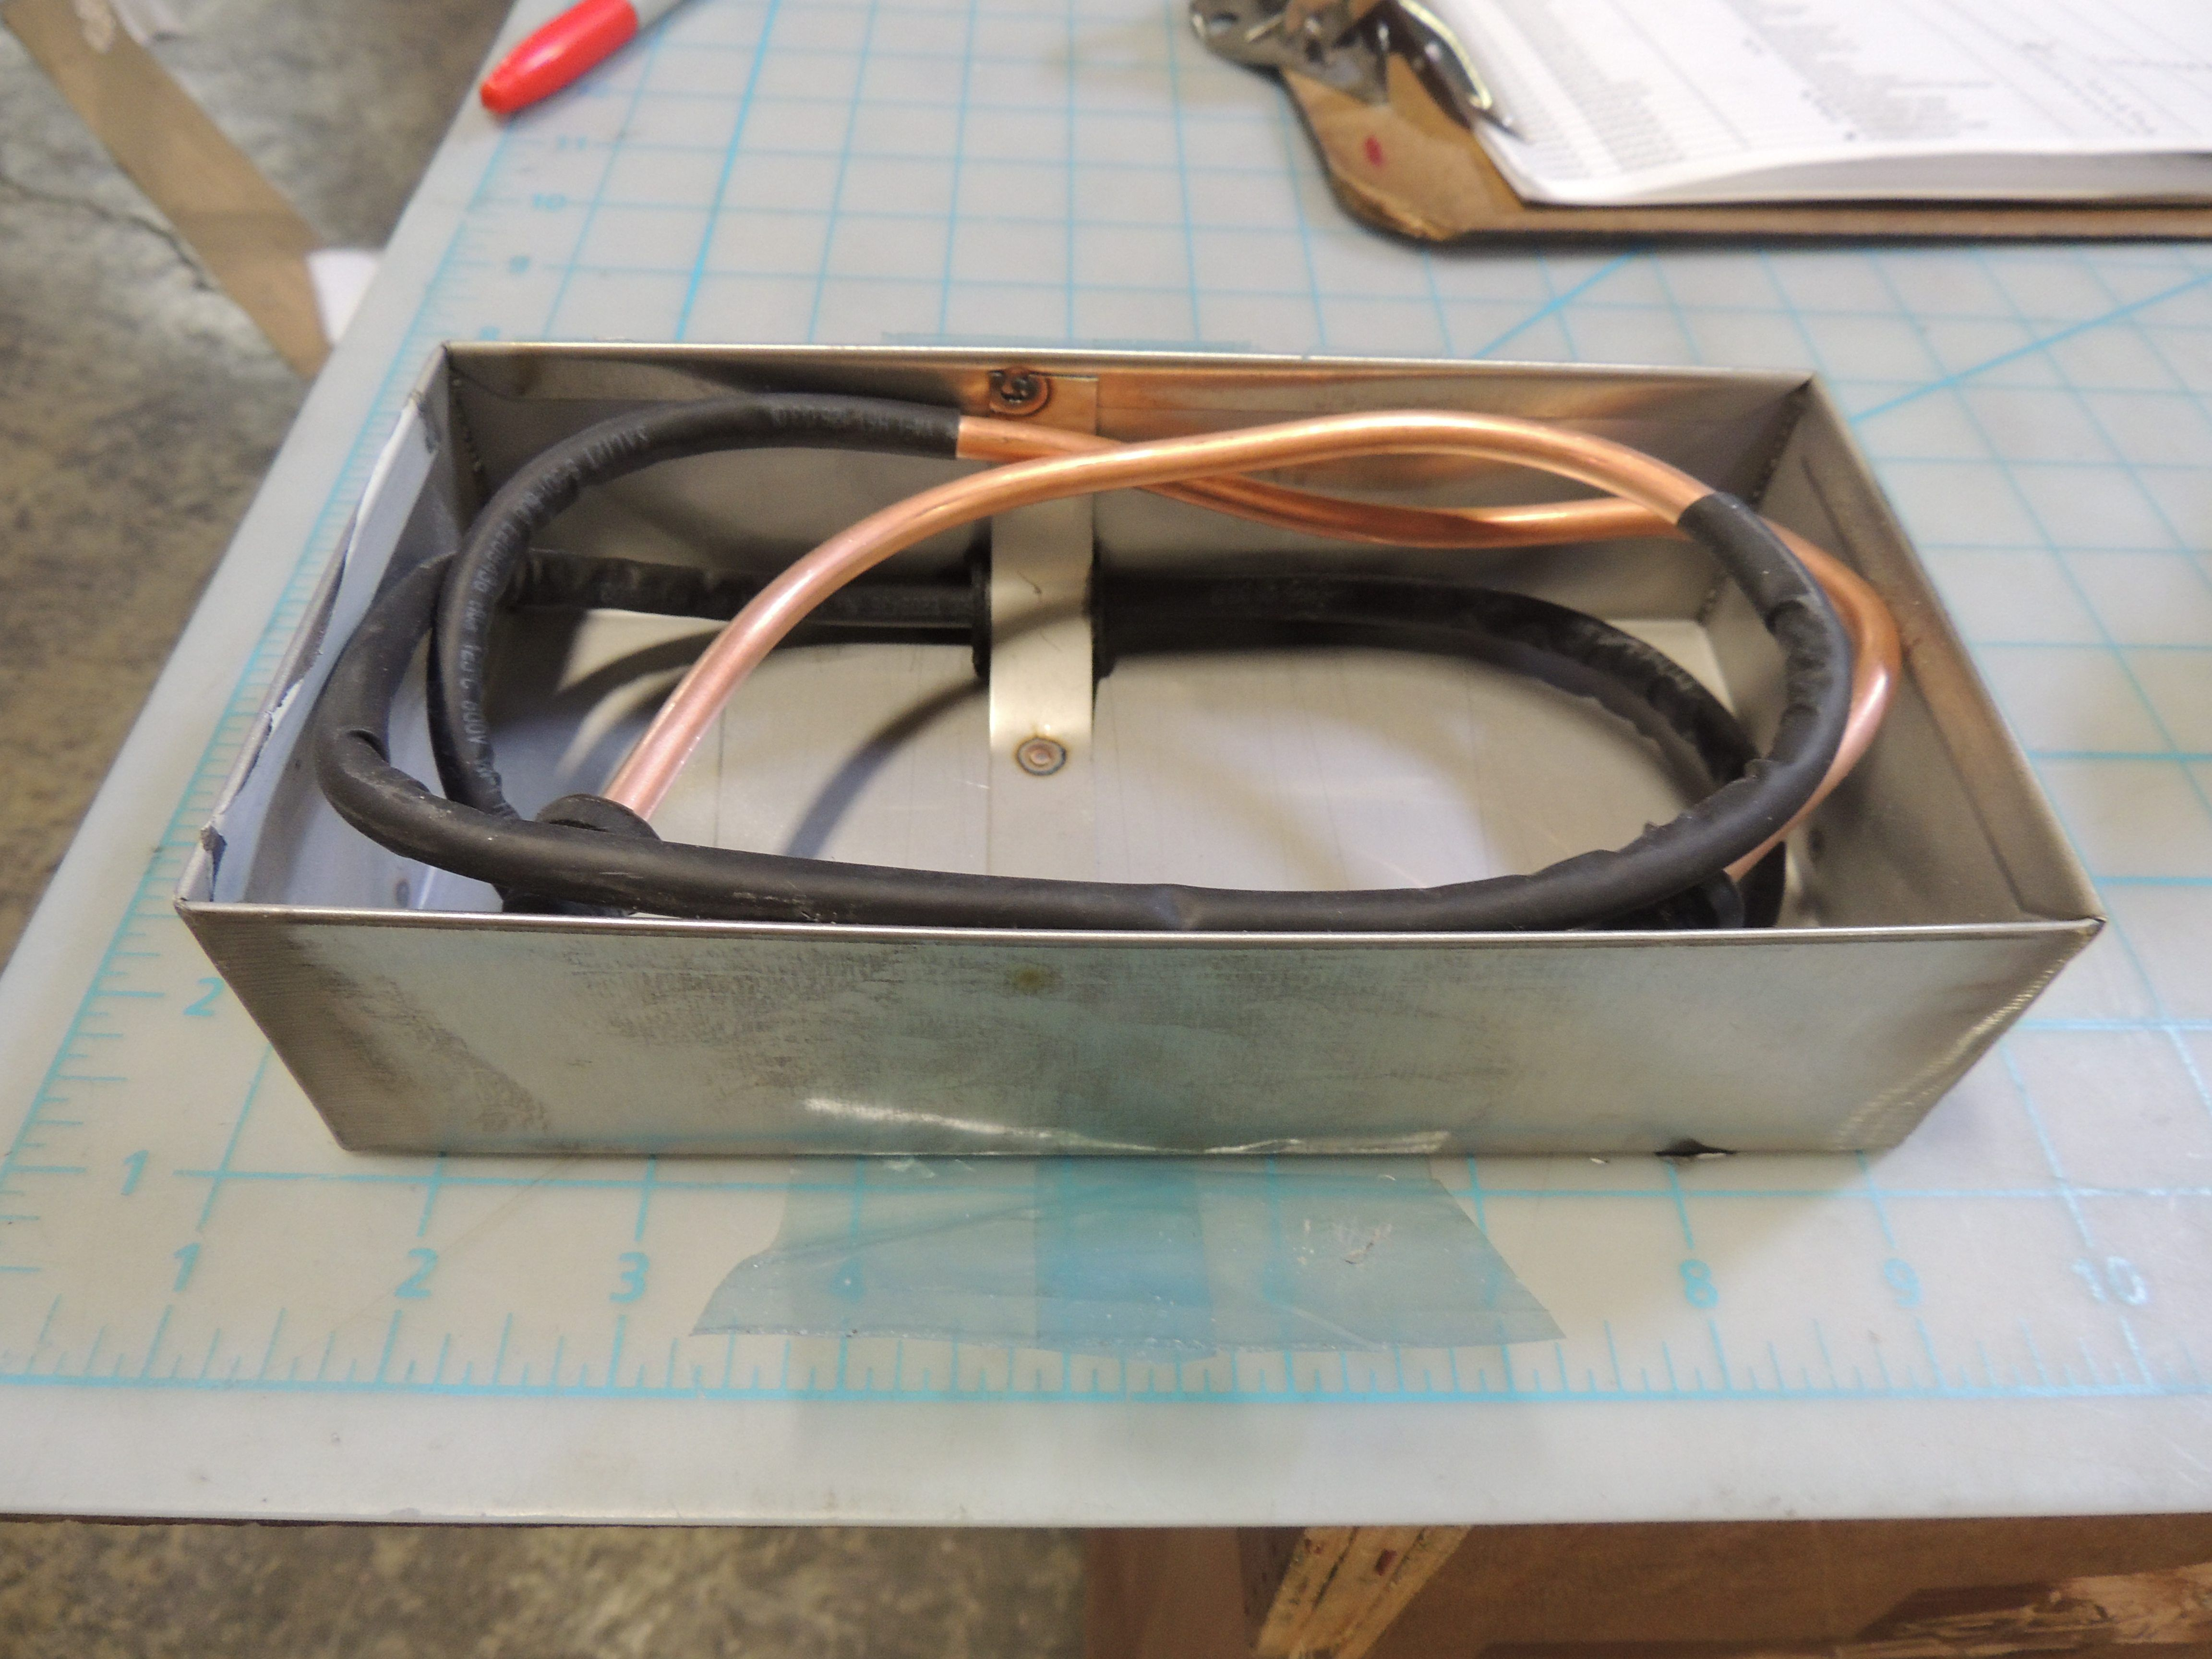 OUTER DRAIN PAN